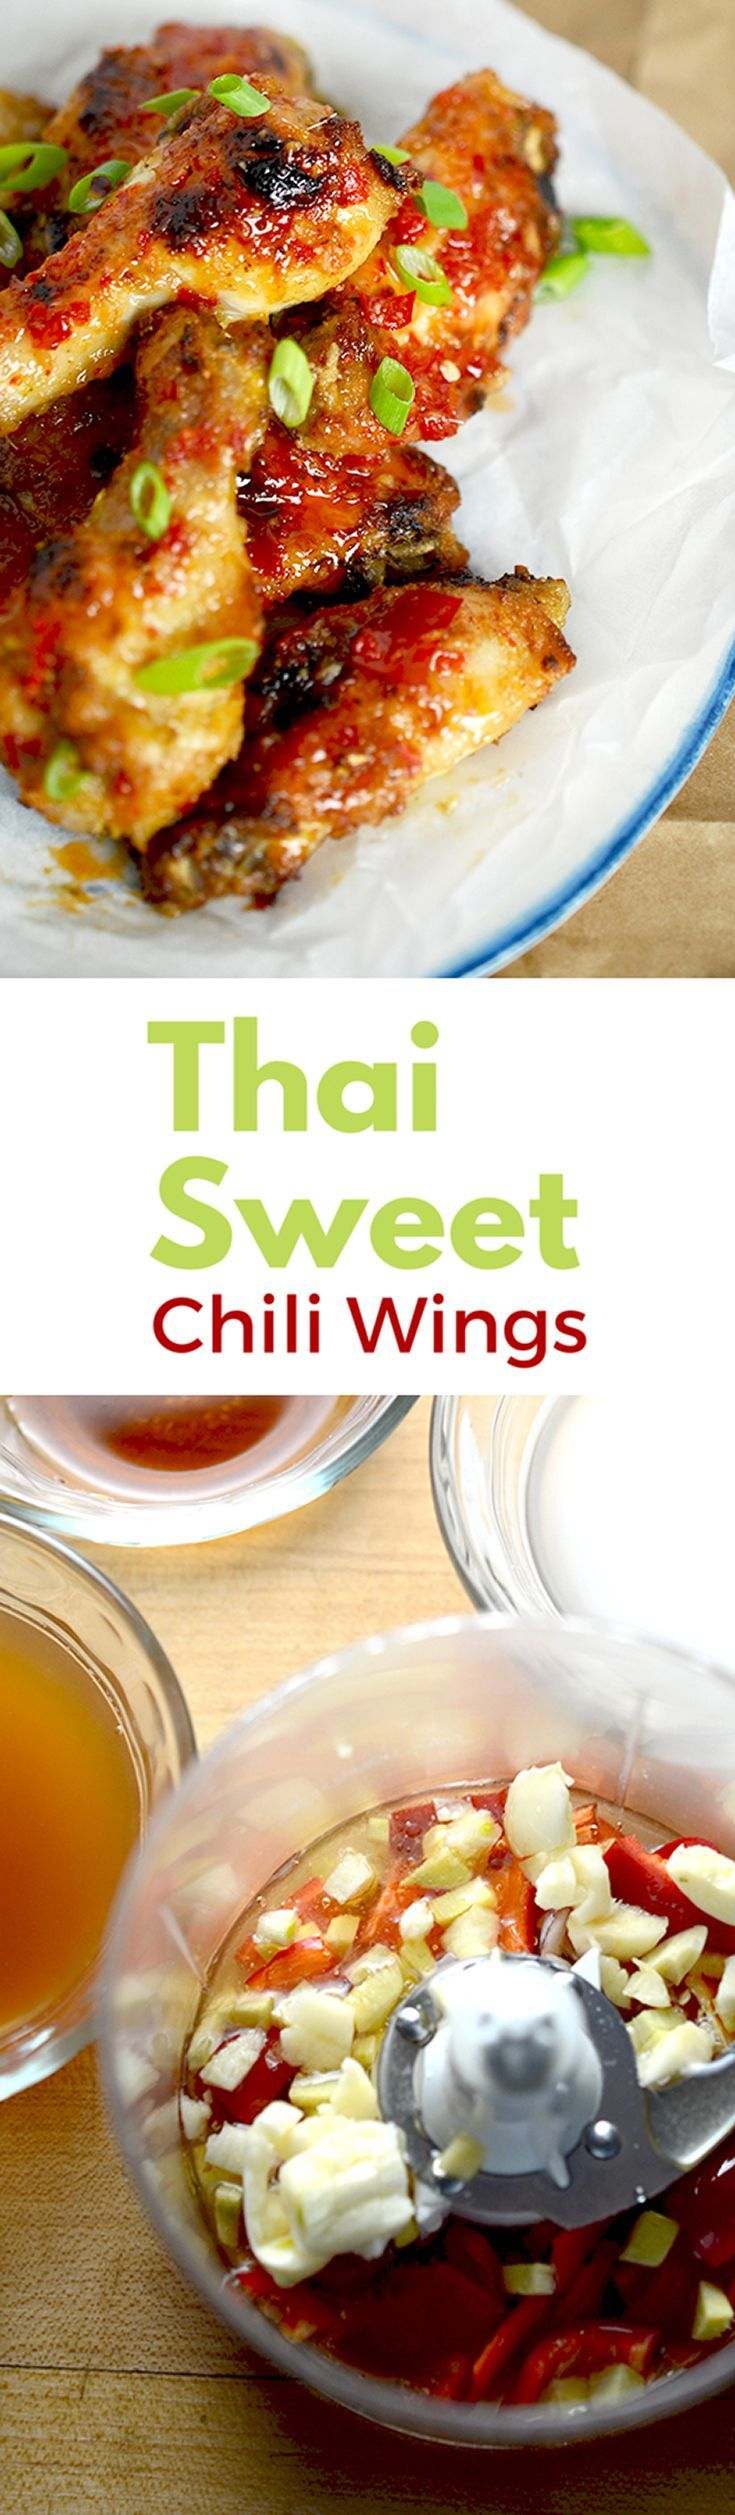 Filed Under: Appetizers, Blog, Brunch, Front Page, Gluten Free, Lunch, Paleo, Primal, Wheat Belly Friendly Tagged With: chicken wings, dairy free, dipping sauce, easy to prepare, gluten free recipe, healthy recipe, paleo recipe, Thai recipe